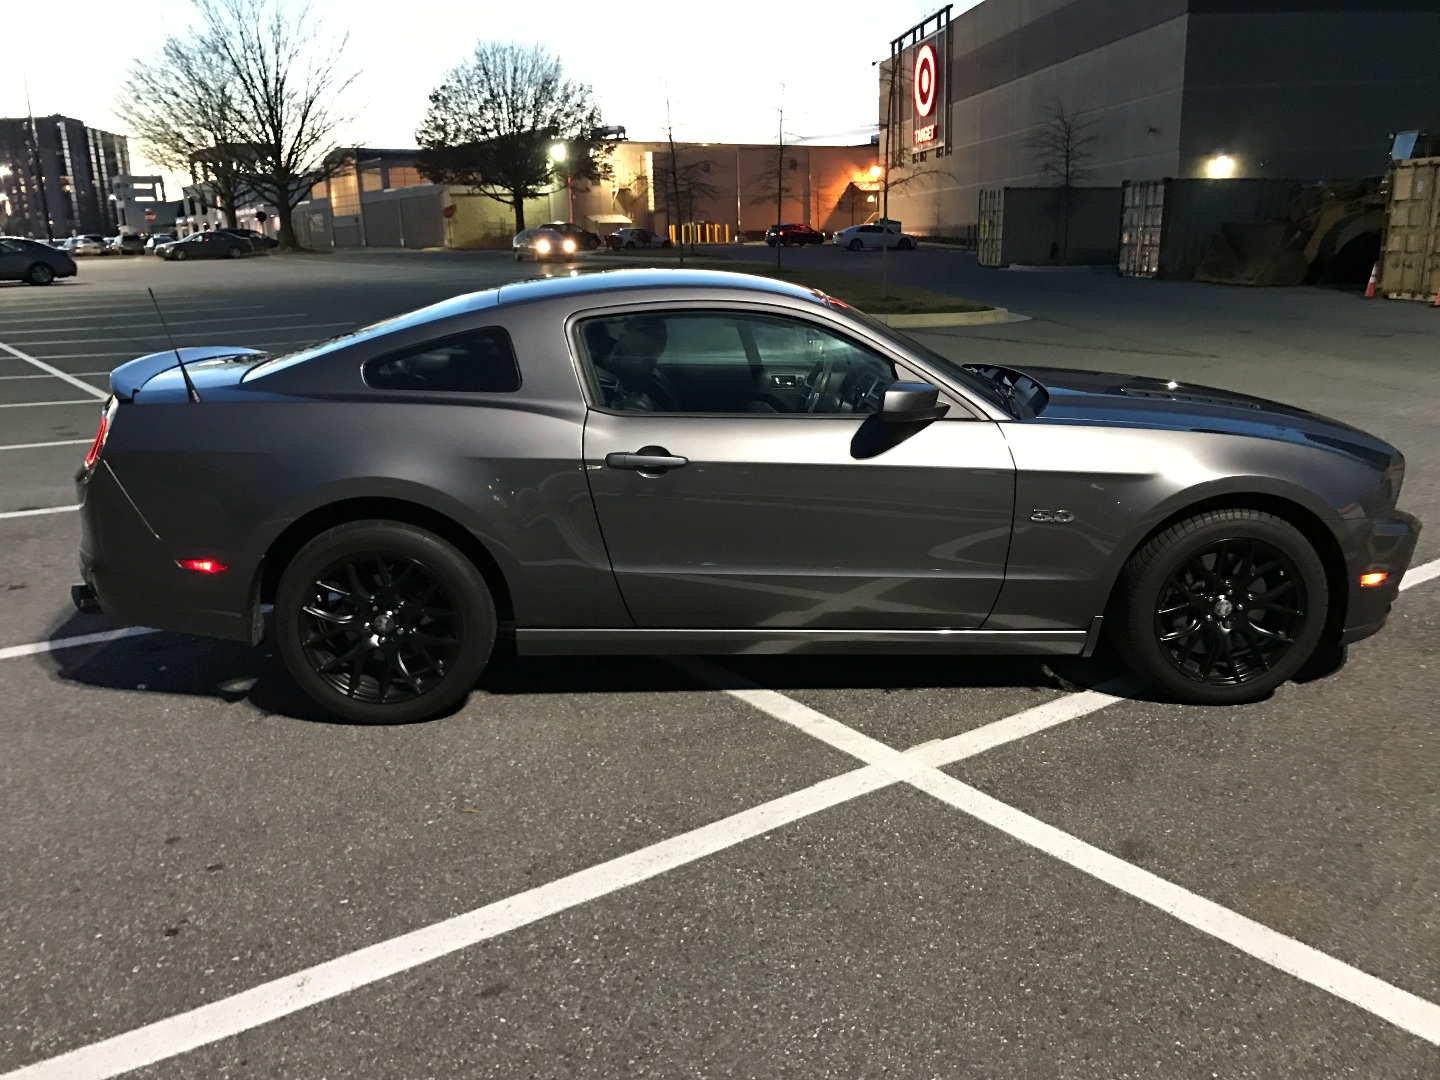 2014 Mustang Gt Premium W Track Pack Mods N A Svtperformance Com